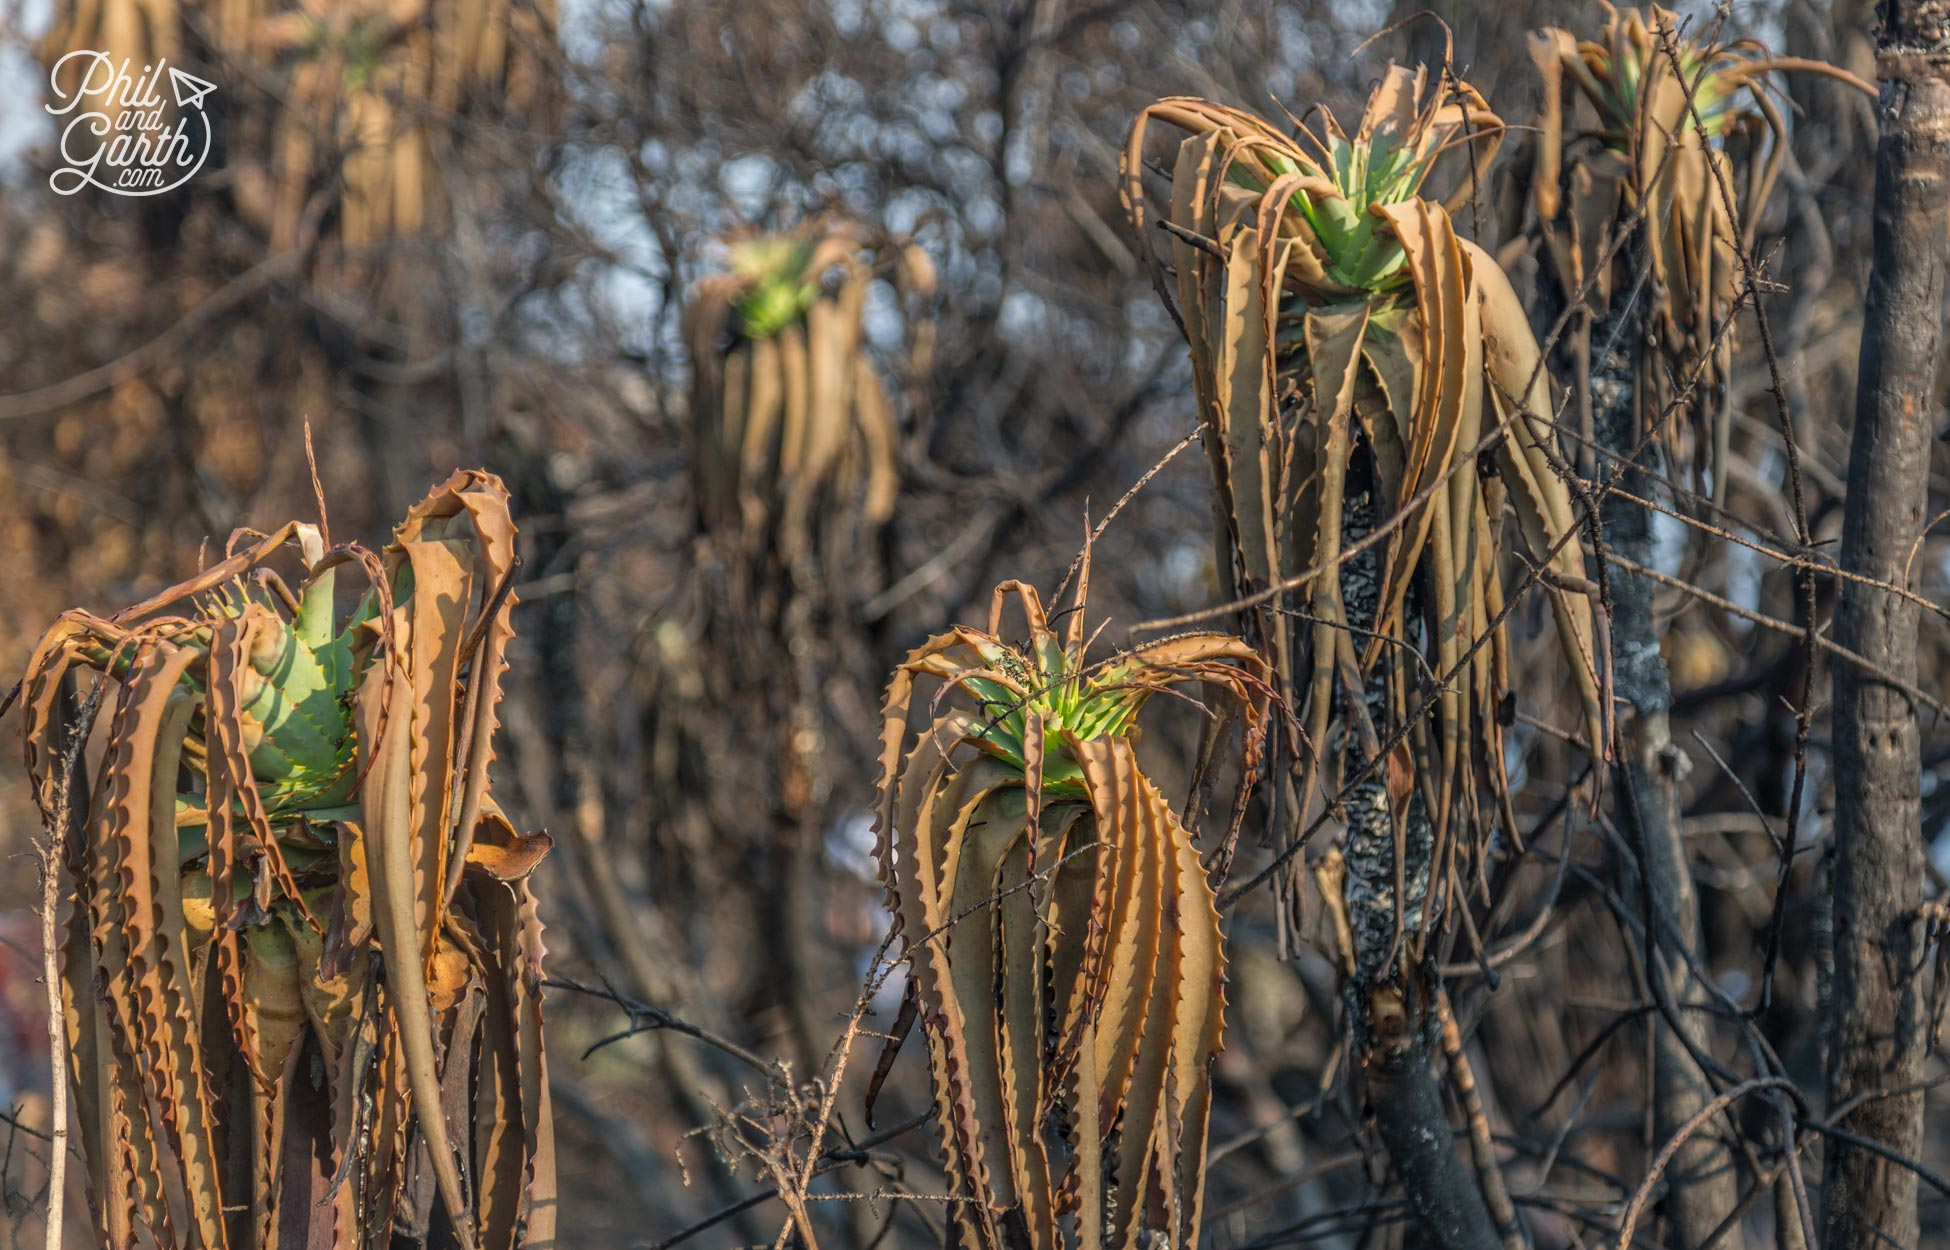 Aloe vera plants caught up in wild fires